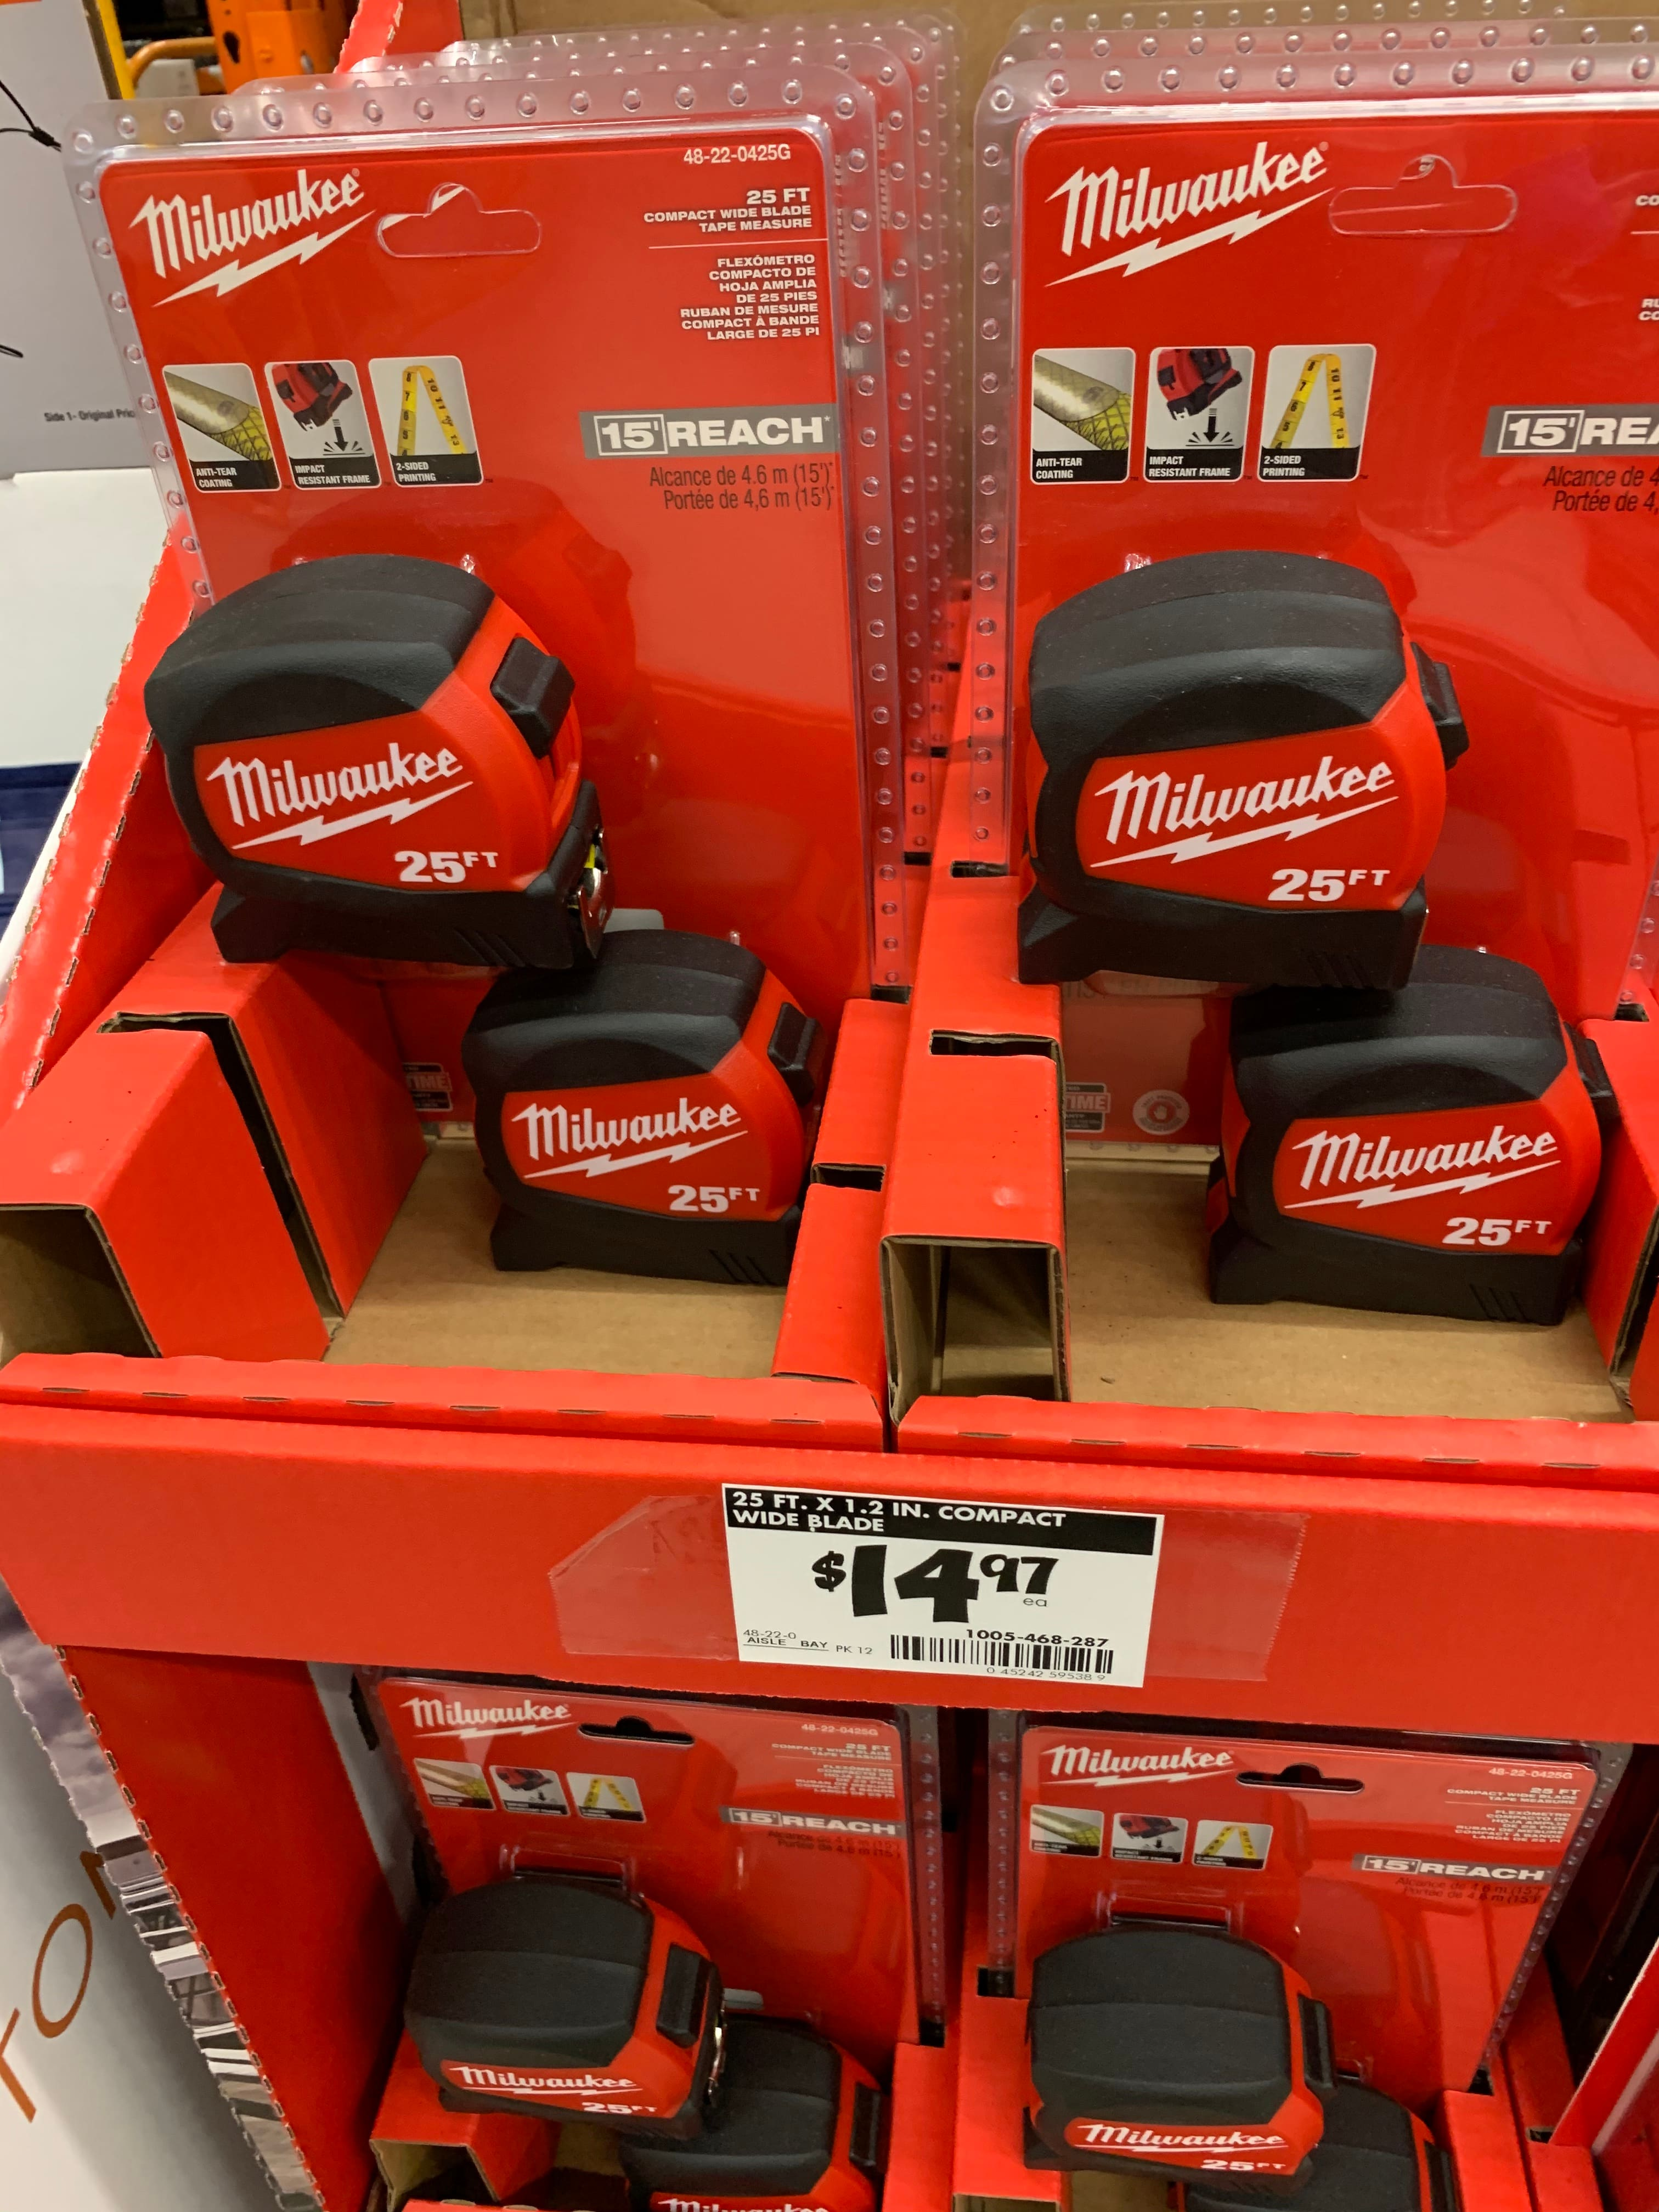 Milwaukee 25 ft. x 1.2 in. Compact Wide Blade Tape Measure (2-Pack) $14.97